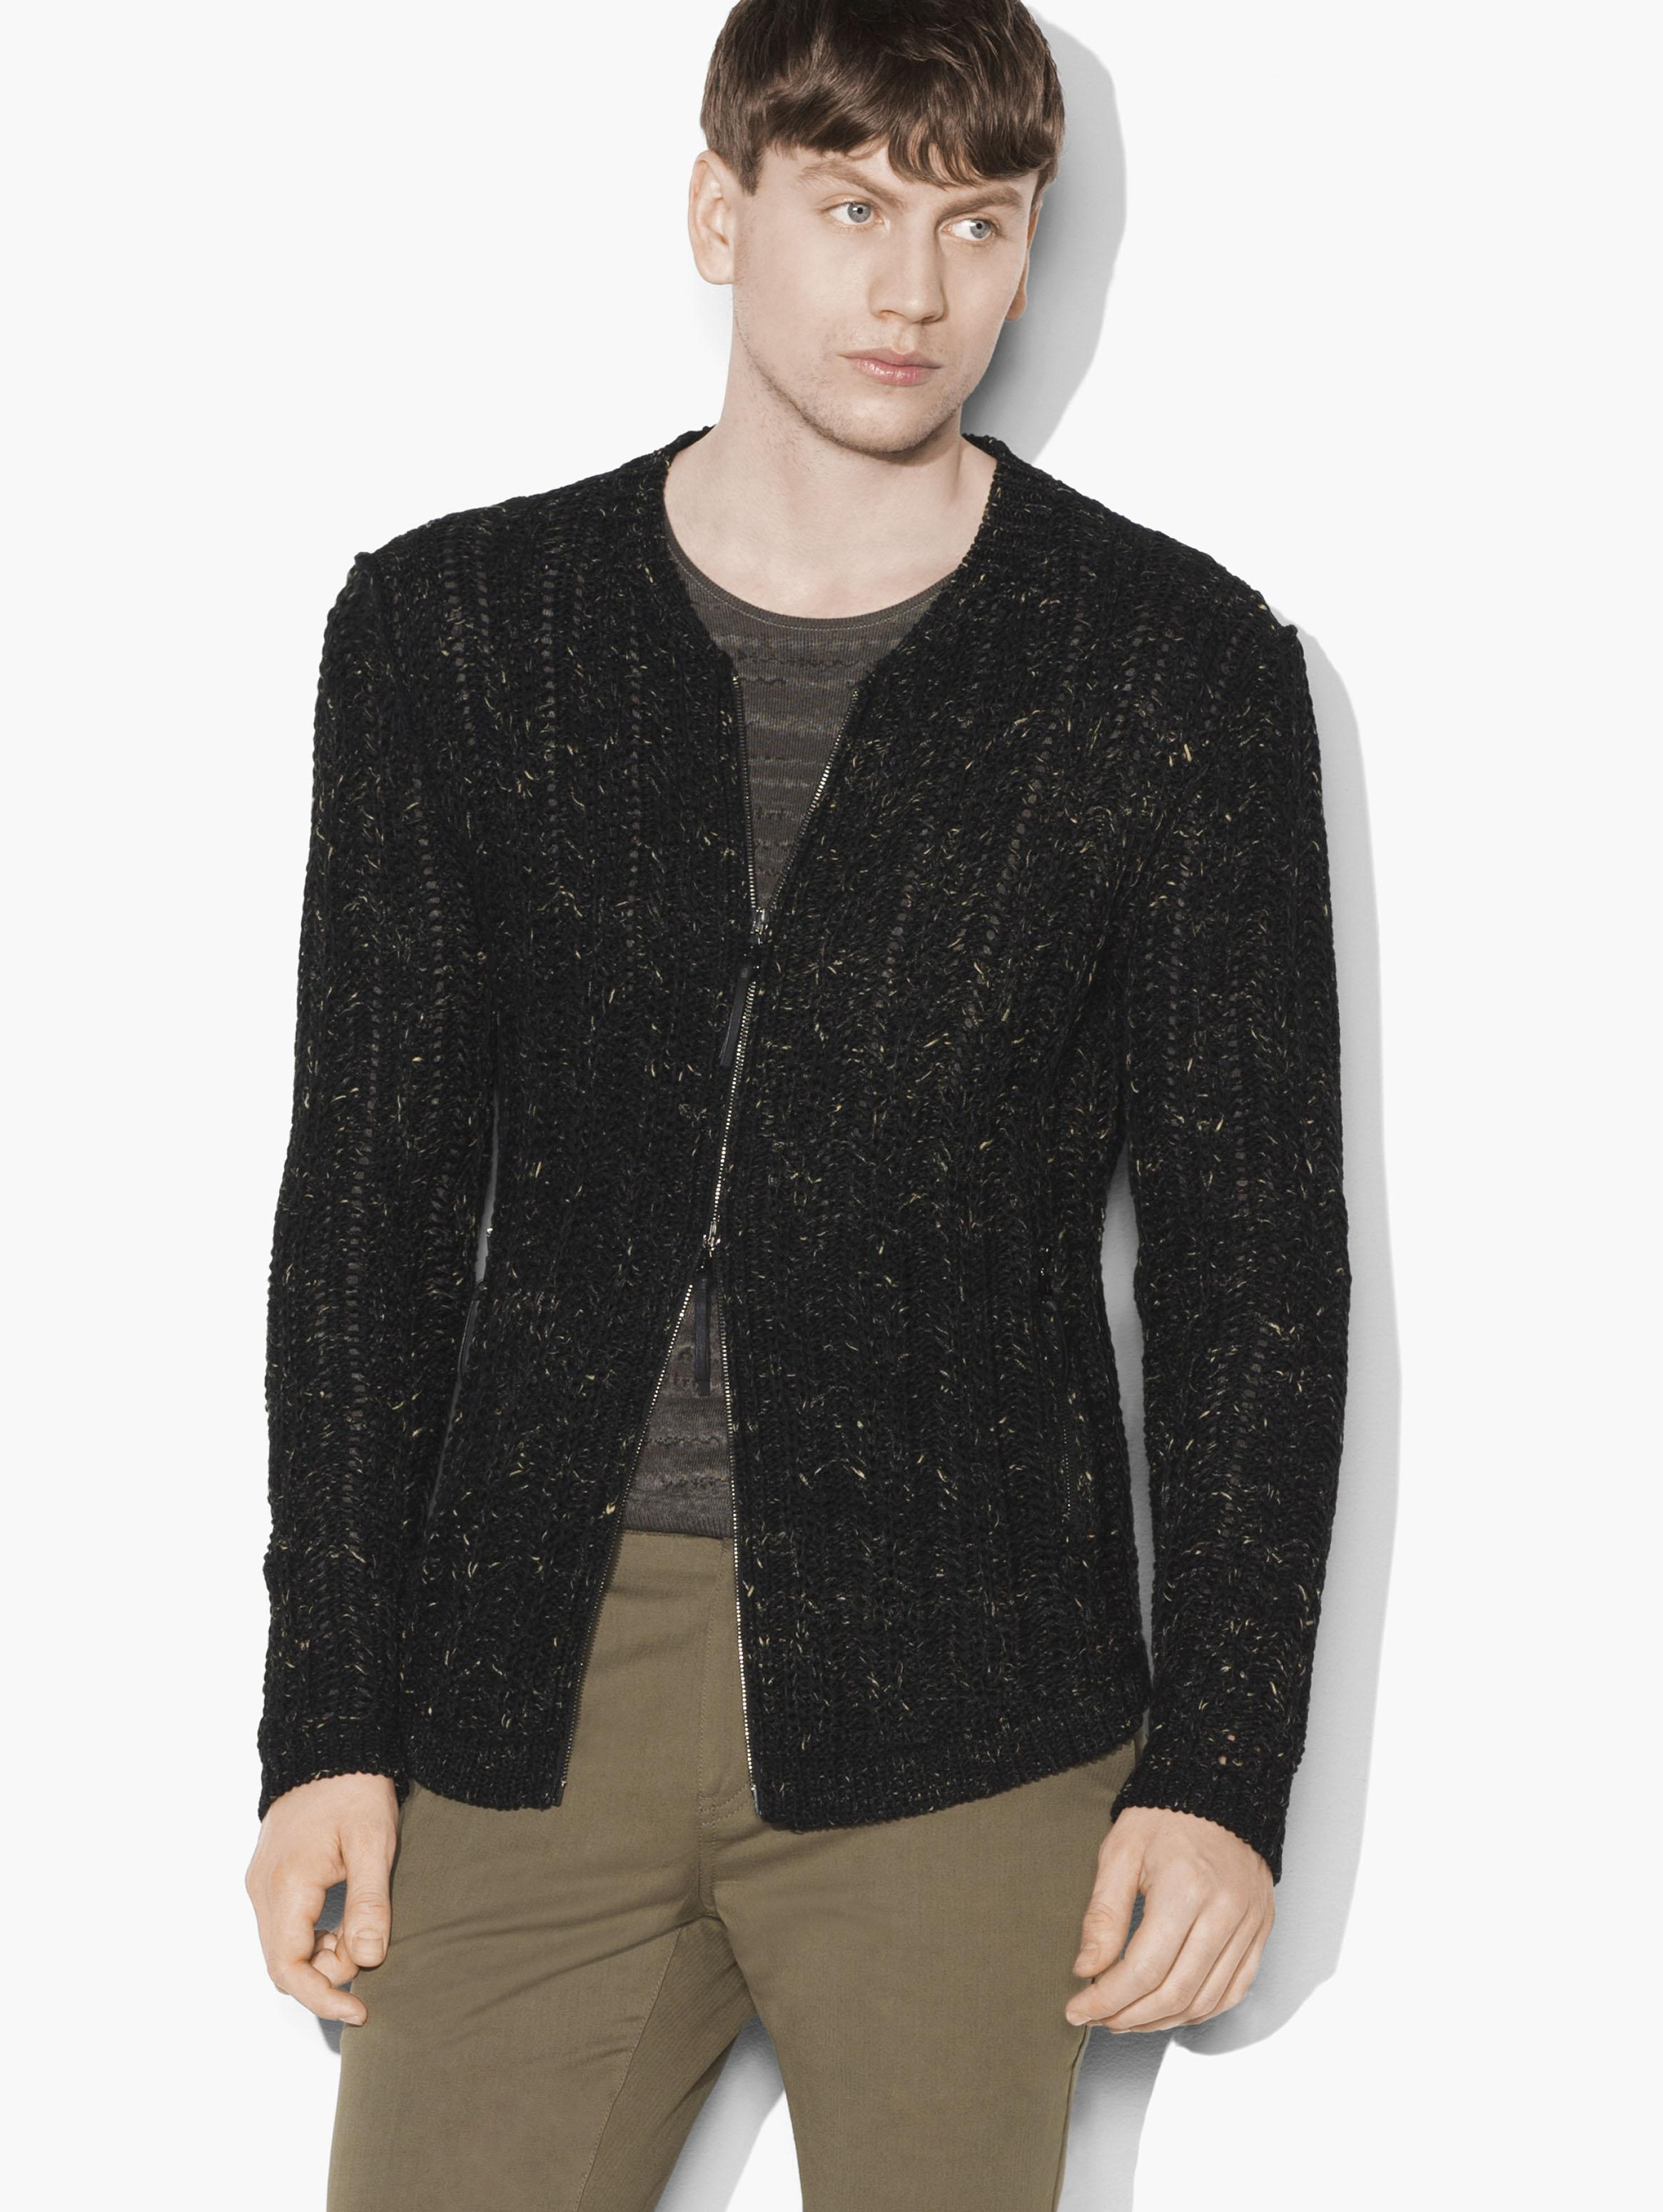 Artisan Cable Sweater Jacket